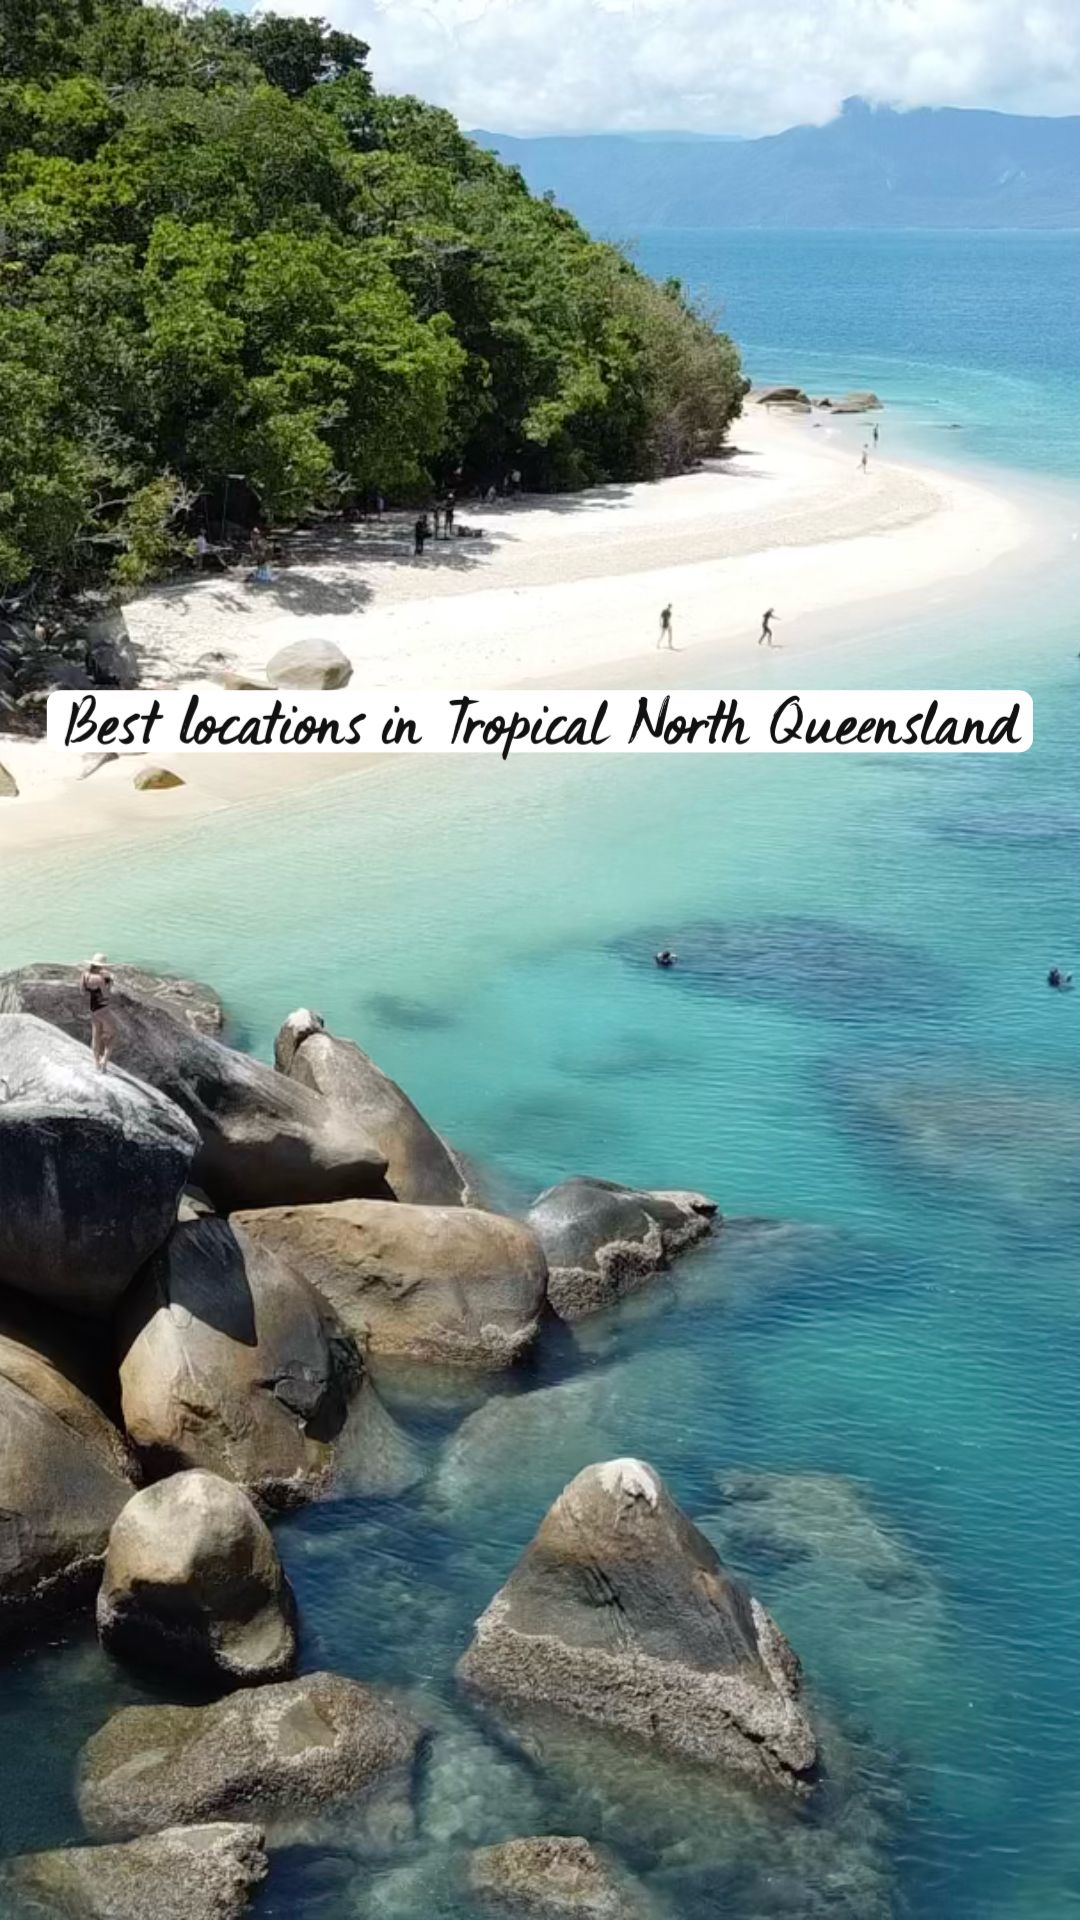 Best Locations in Tropical North Queensland